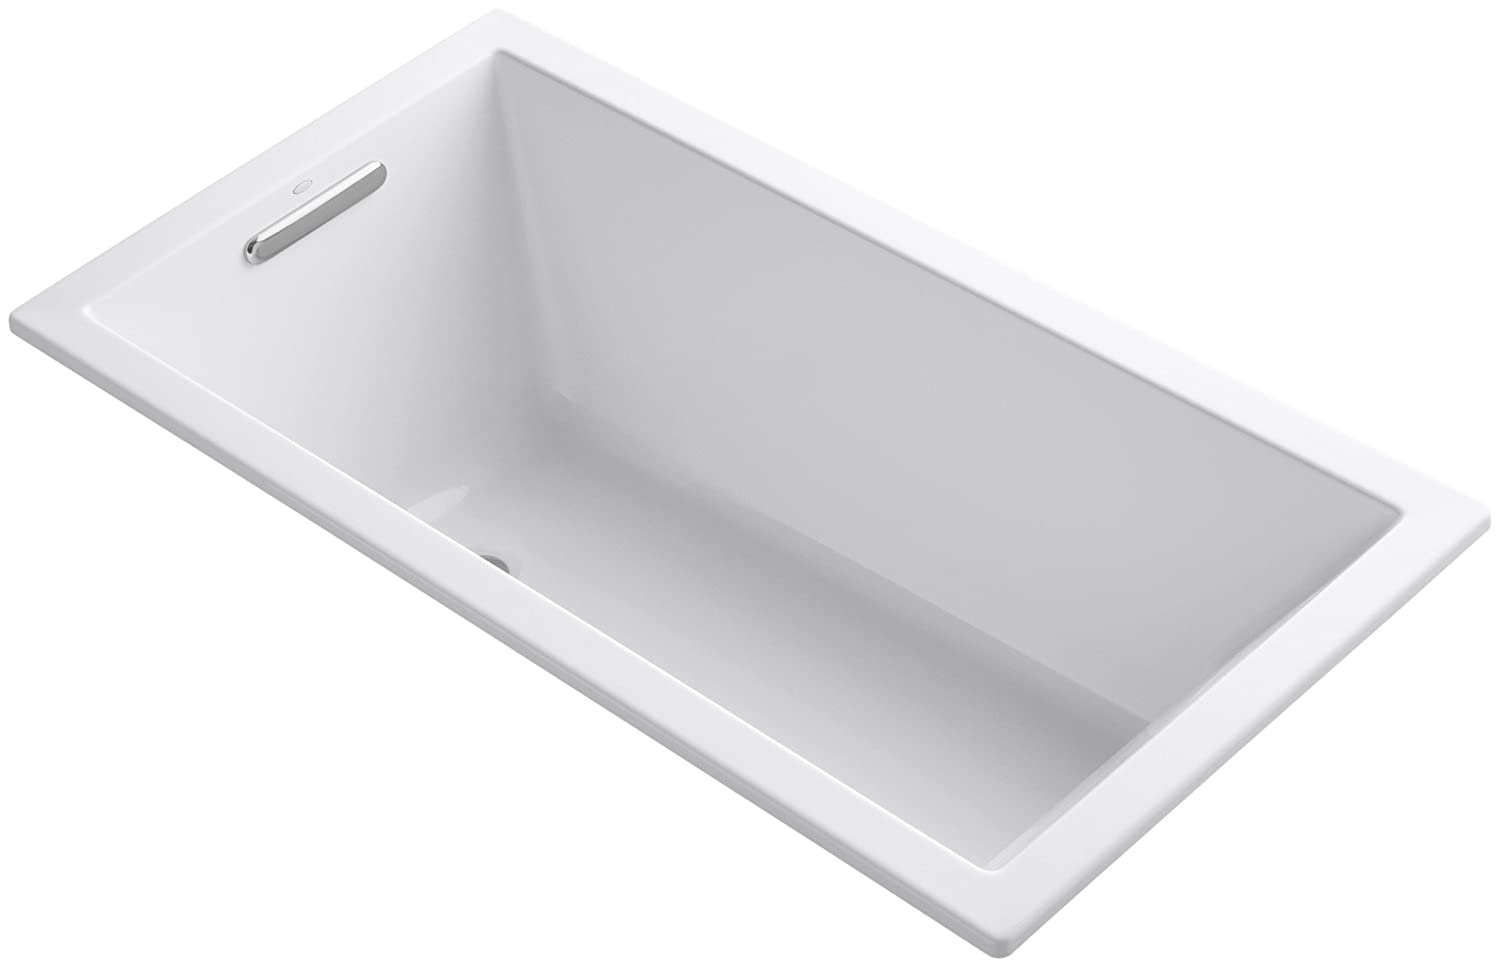 KOHLER K-1130-0 Underscore 5-Foot Acrylic Bath, White